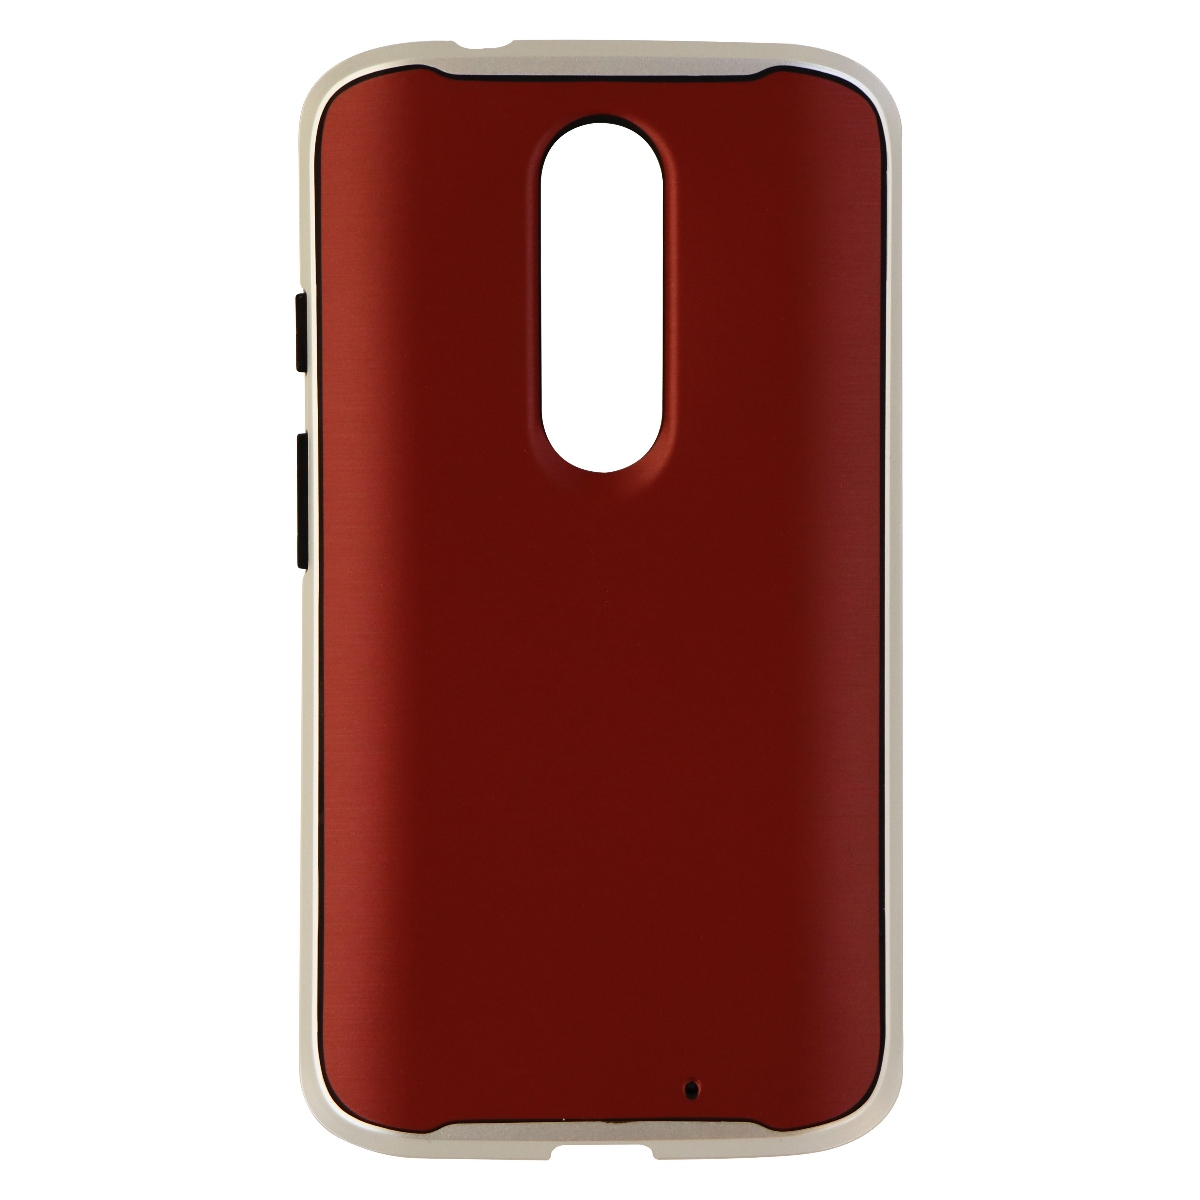 Verizon Cover Series Protective Case for Motorola Droid Turbo 2 - Red Silver